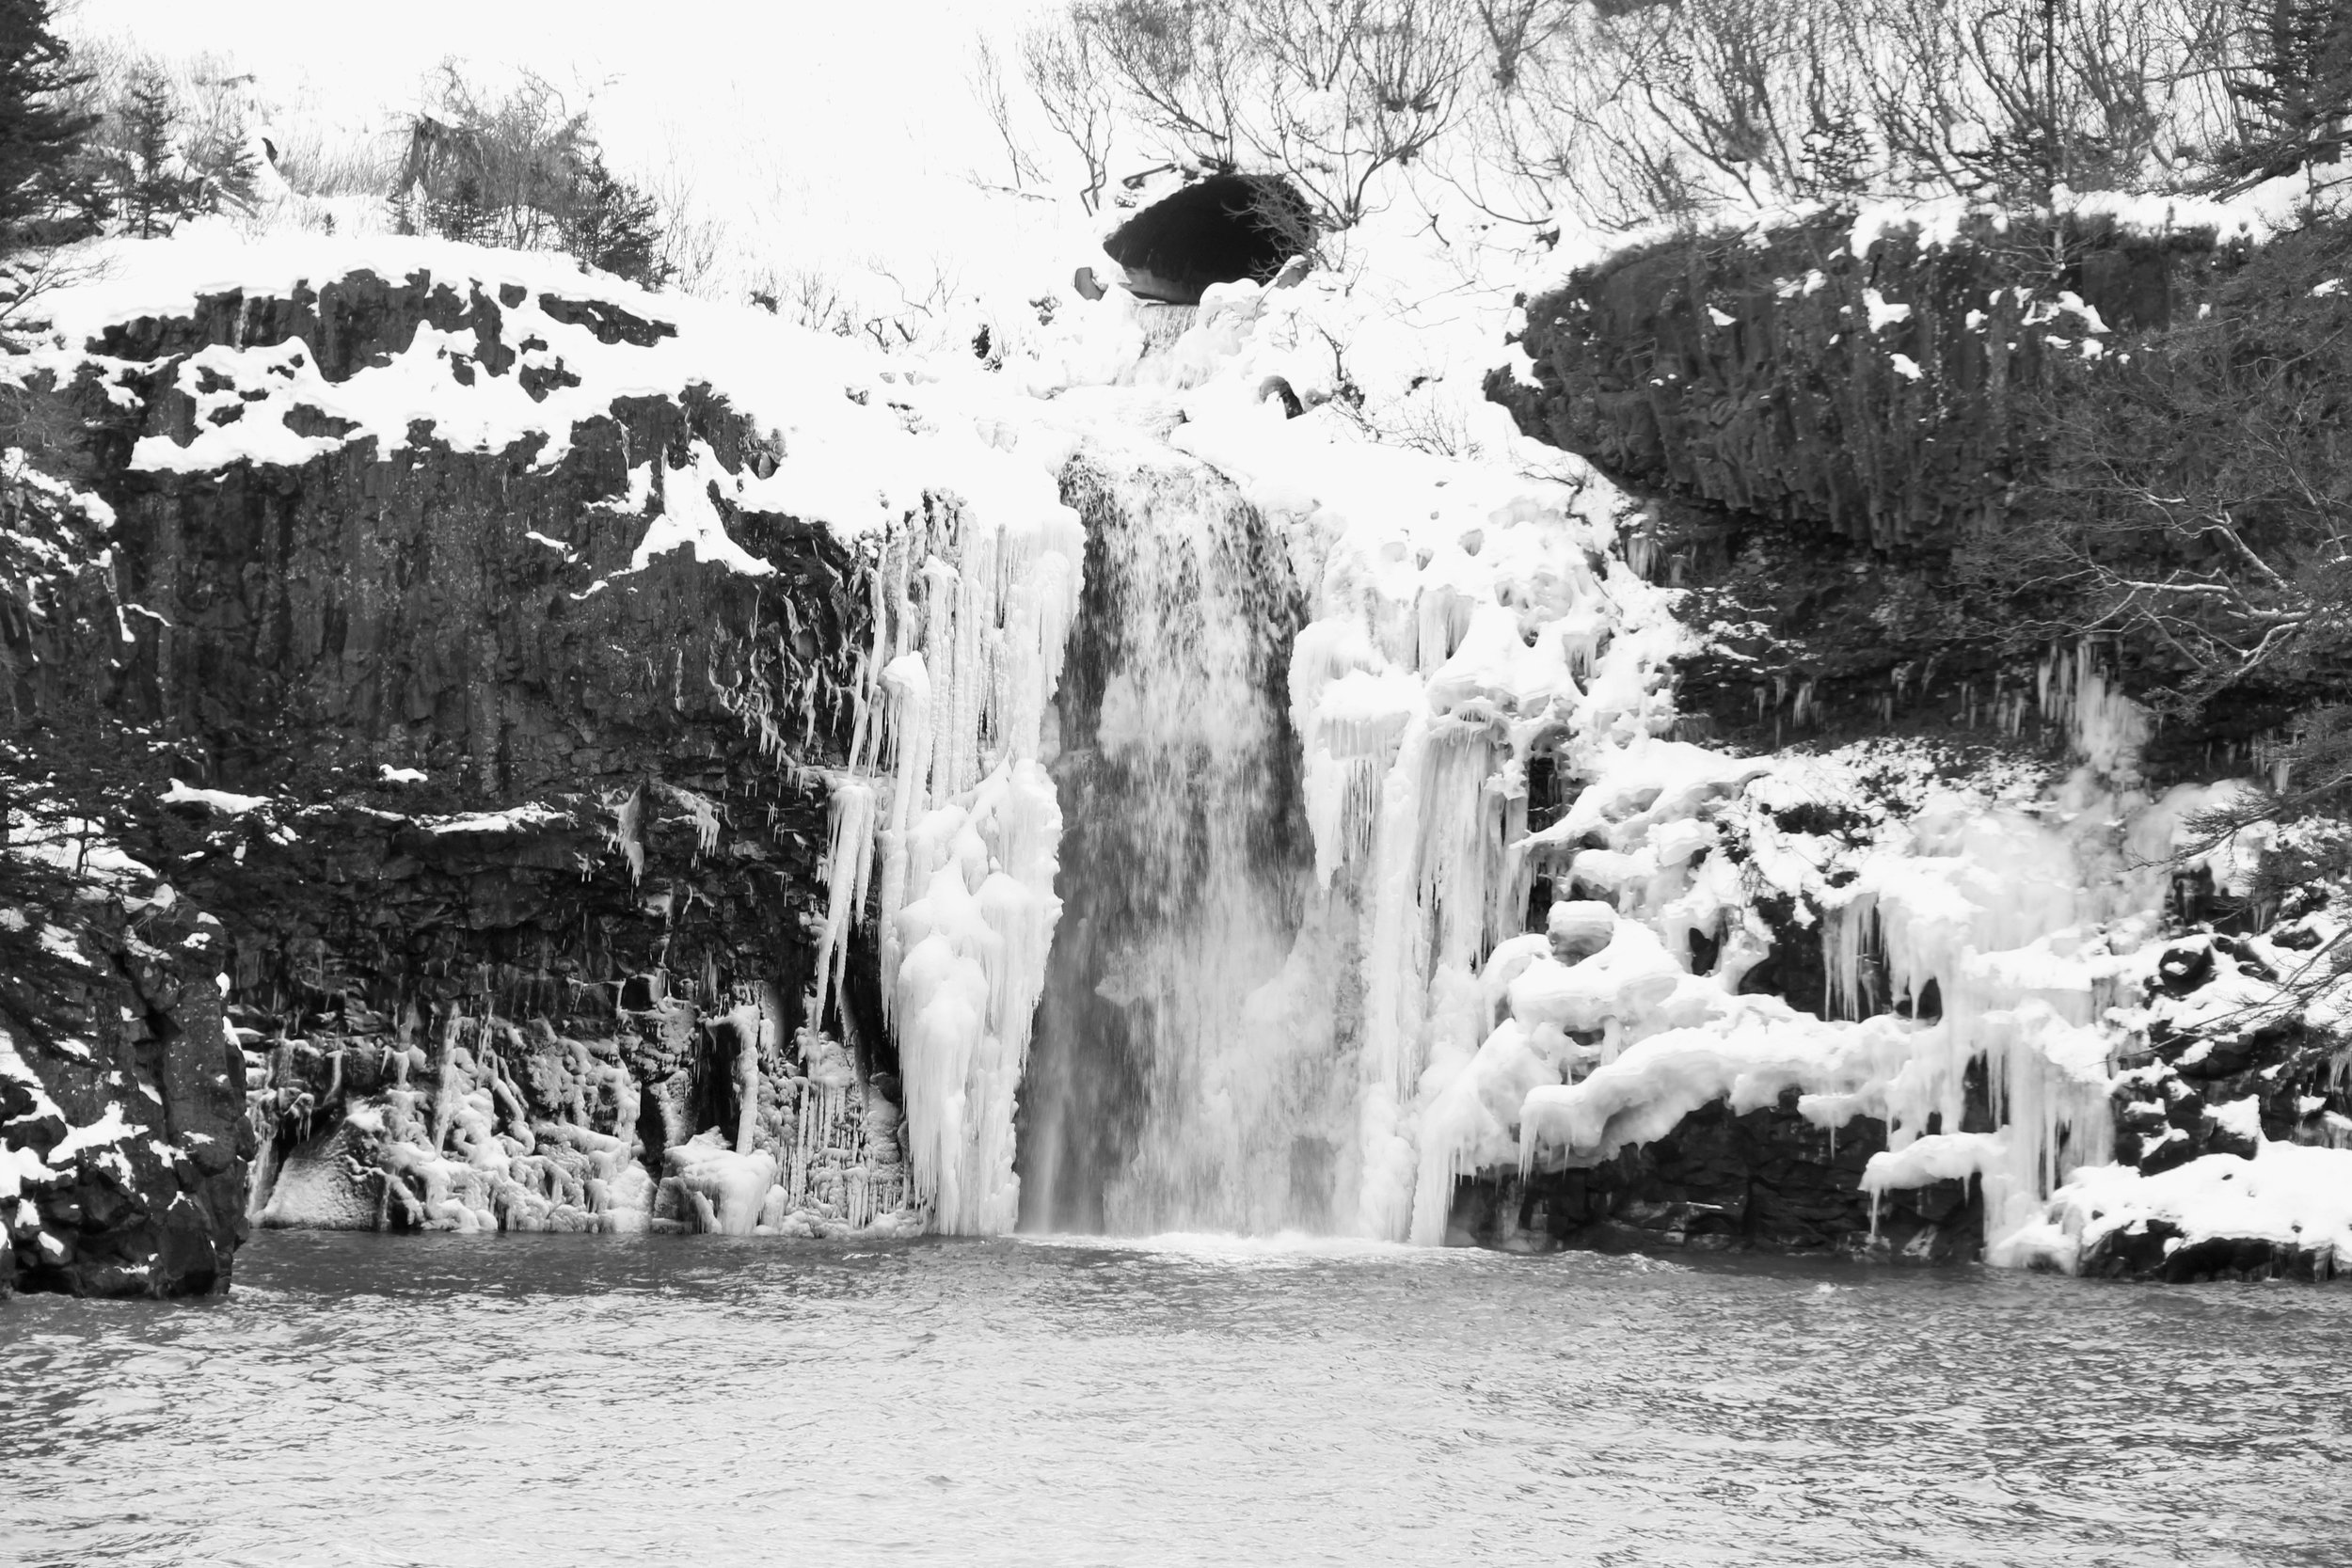 Baxter Harbour waterfall.  At low tide, you can walk on the sea floor to the base of the falls.